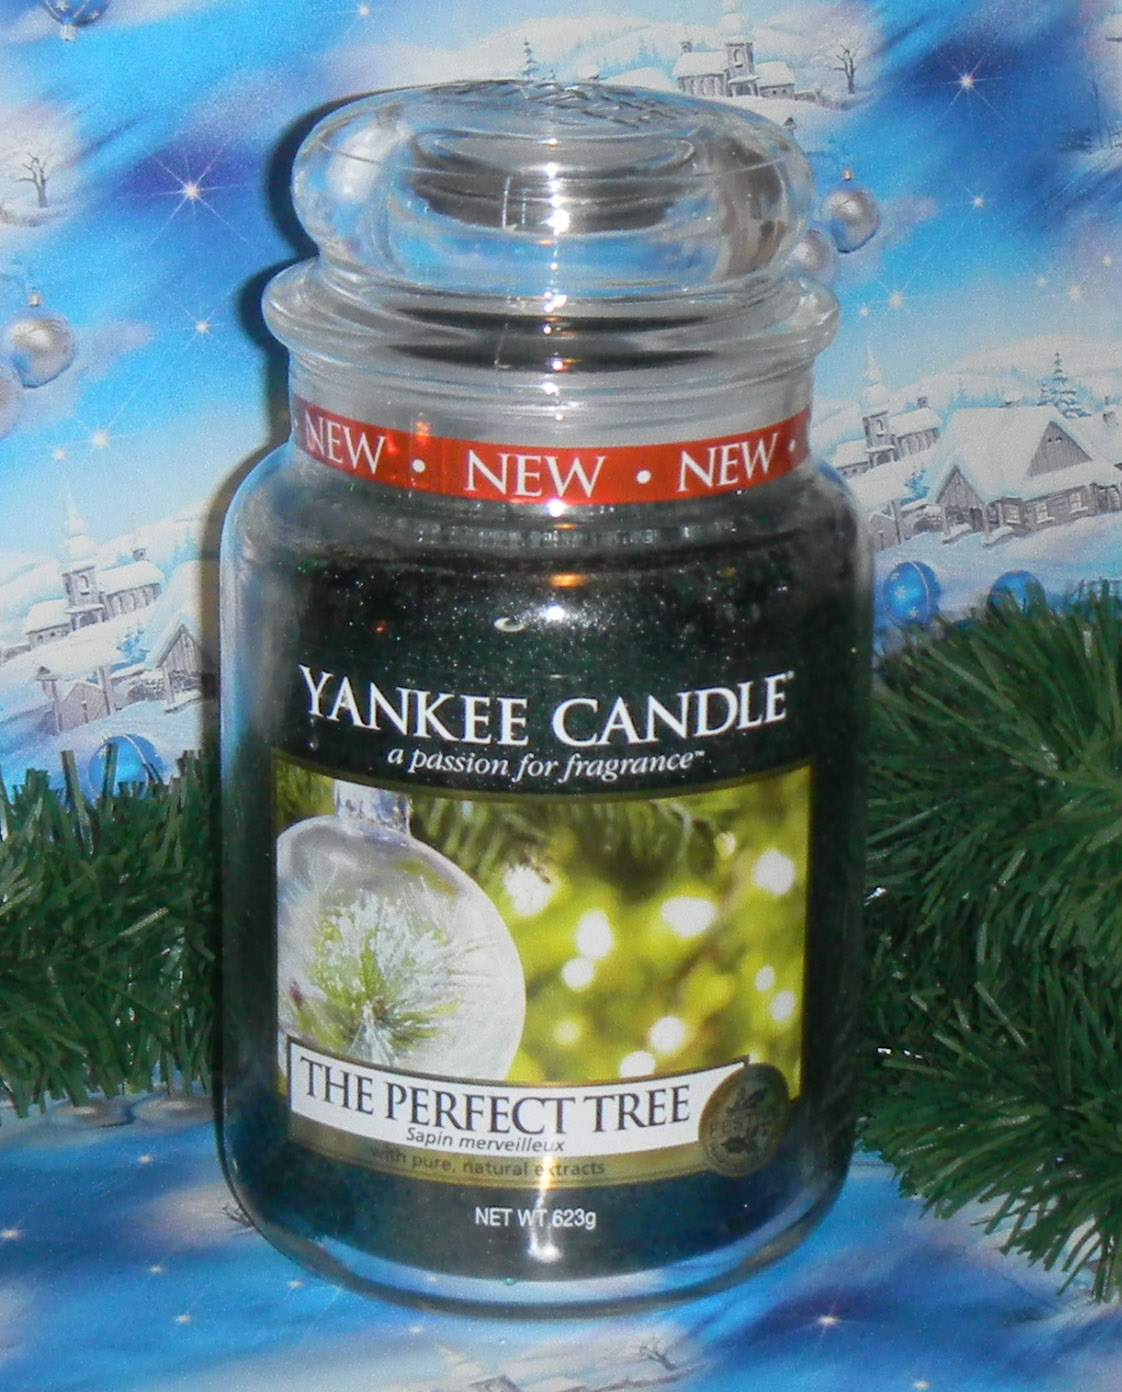 LIFE AND STUFF: 10 Yankee Candle Weihnachtsdüfte